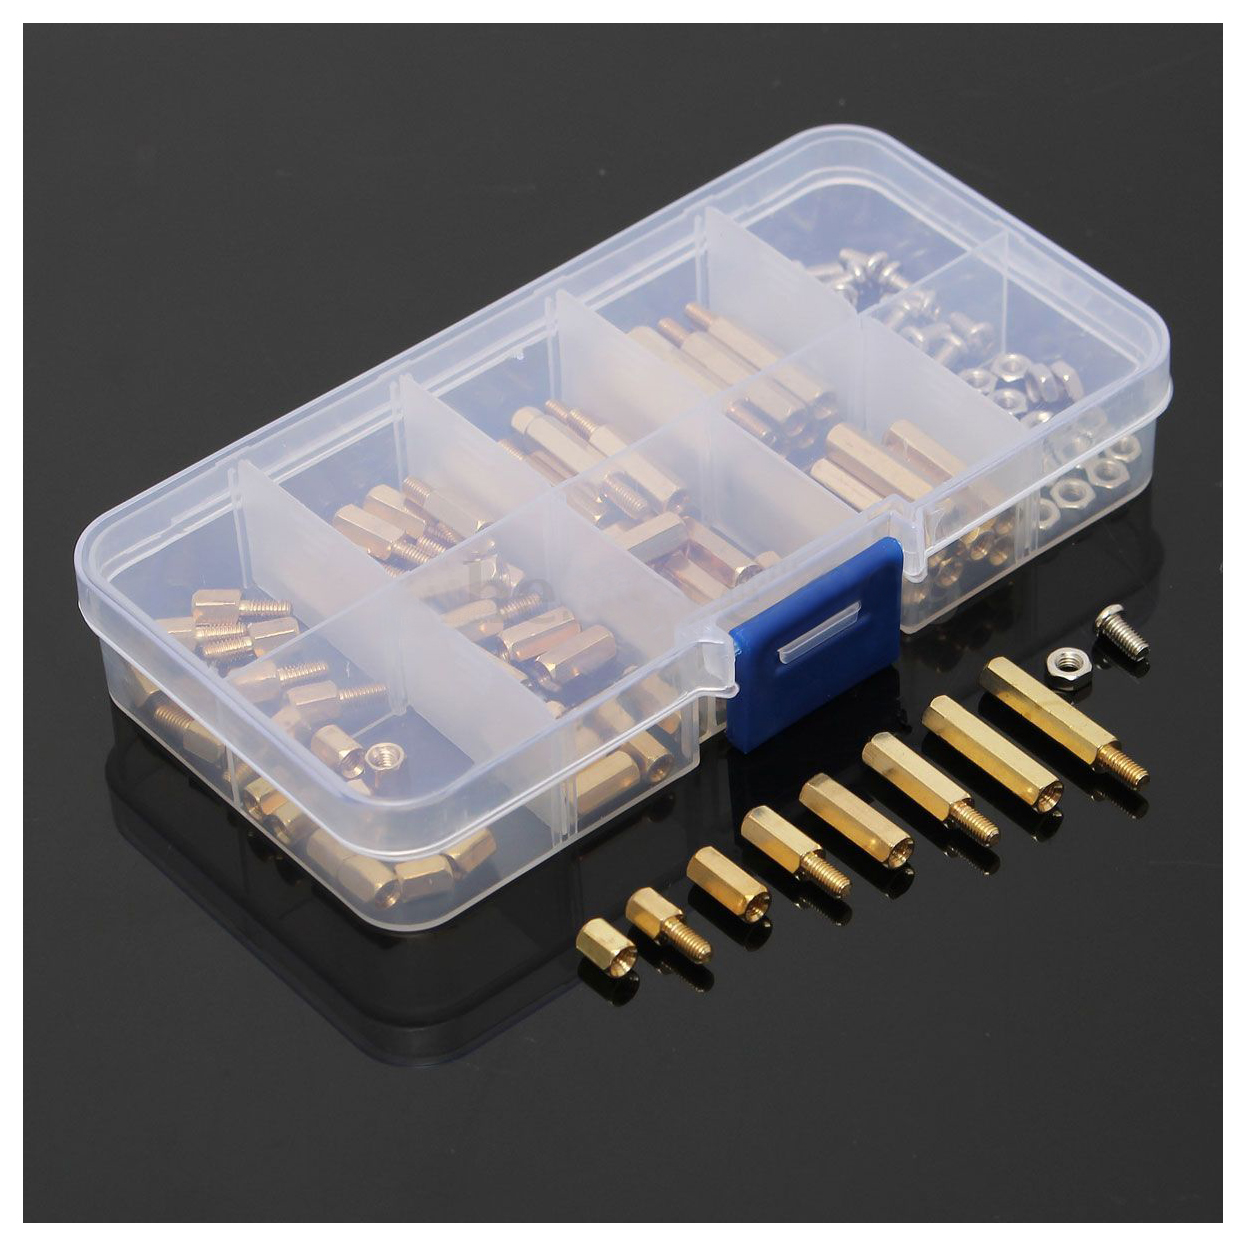 WSFS Hot 120Pcs M3 Male Female Brass Standoff Spacer PCB Board Hex Screws Nut Assortment thgs 120pcs m3 male female brass standoff spacer pcb board hex screws nut assortment